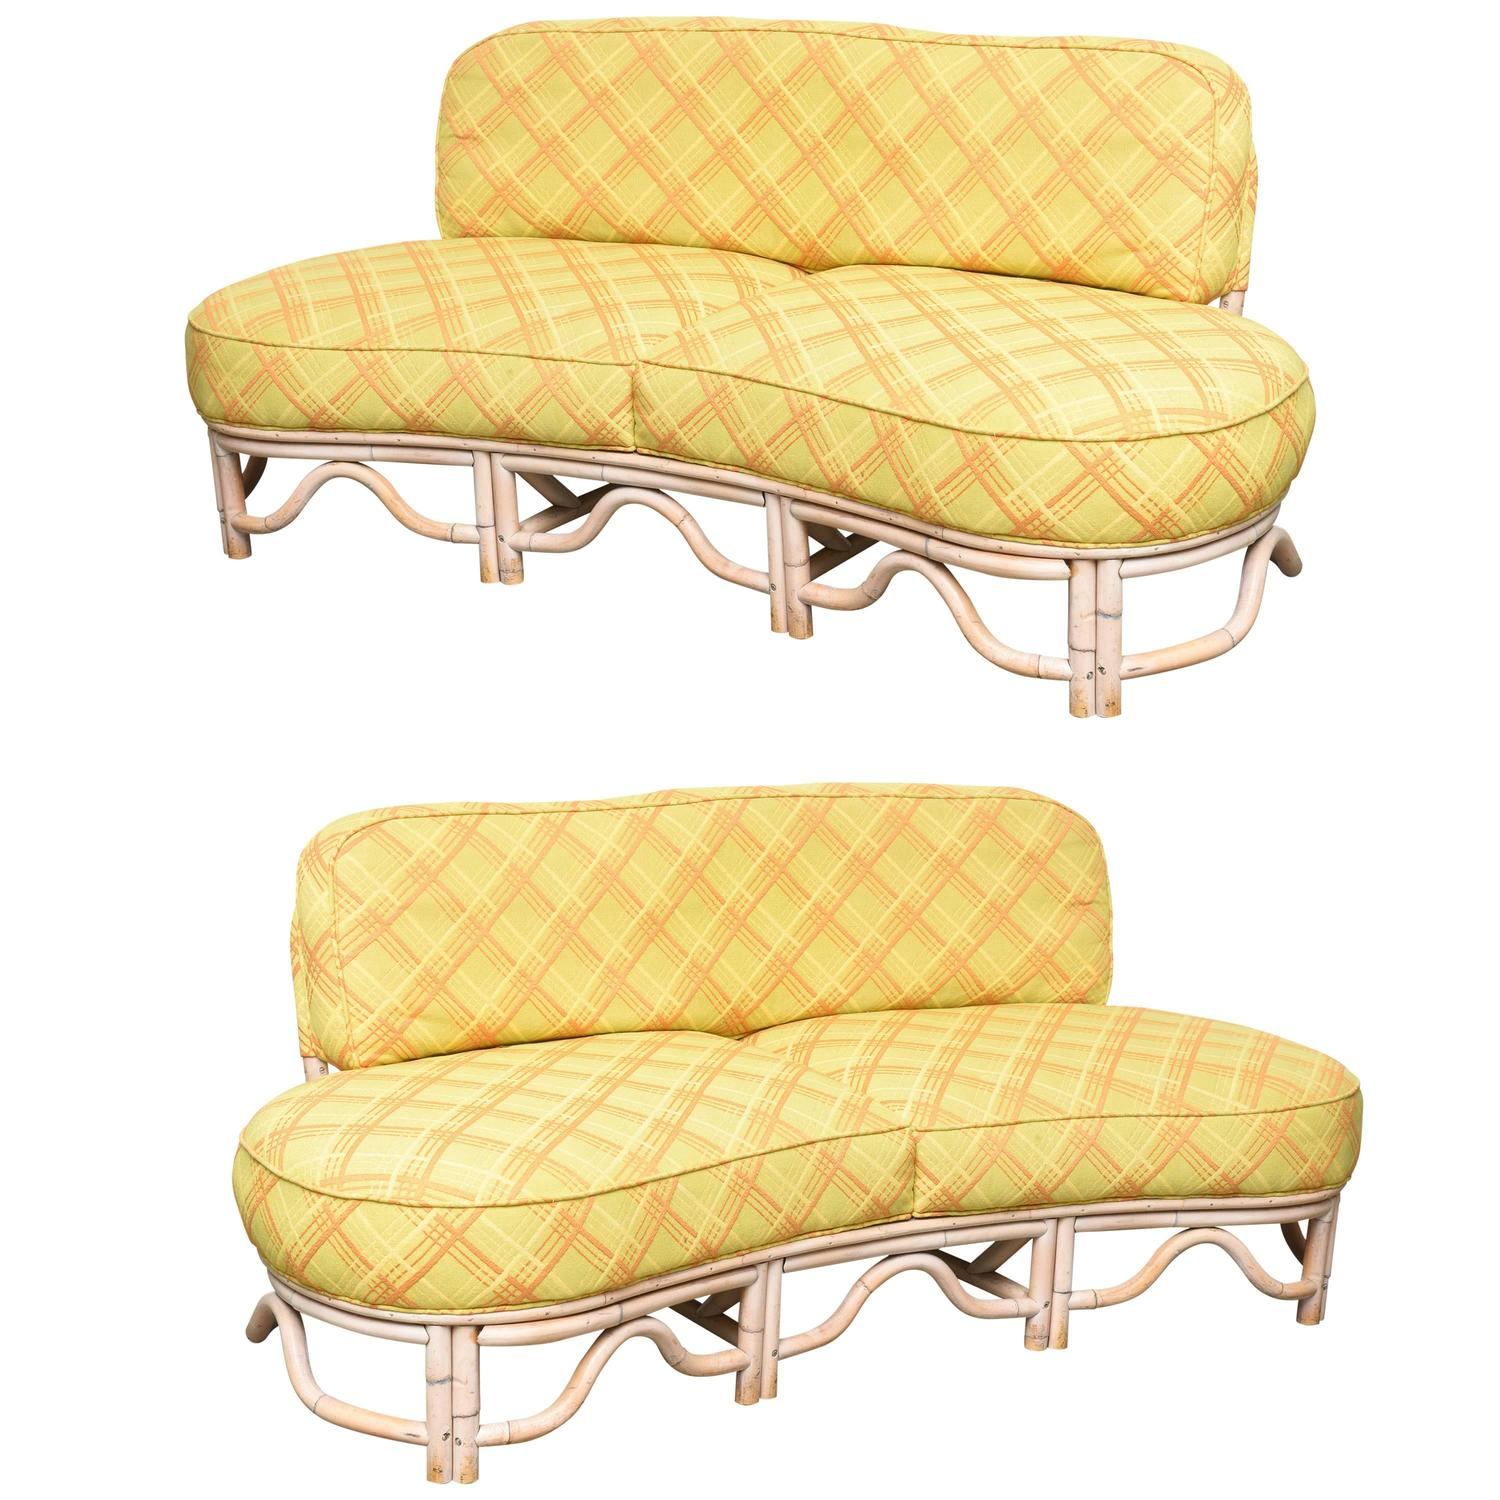 New 28 vintage rattan sofa Fantastic Pair Of Matching  : 3342843z from 45.77.210.35 size 1500 x 1500 jpeg 194kB